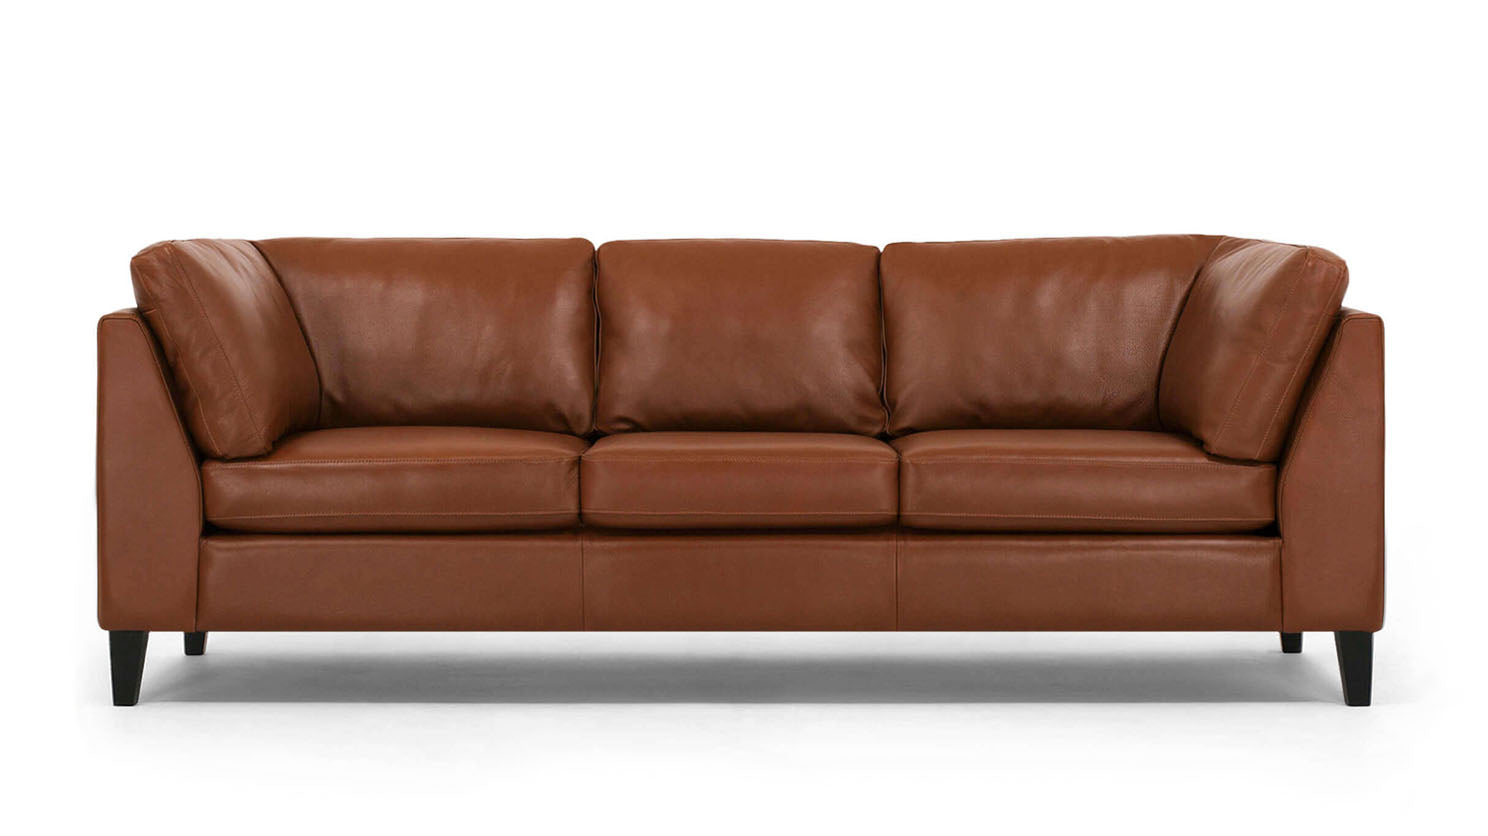 salema sofa - leather